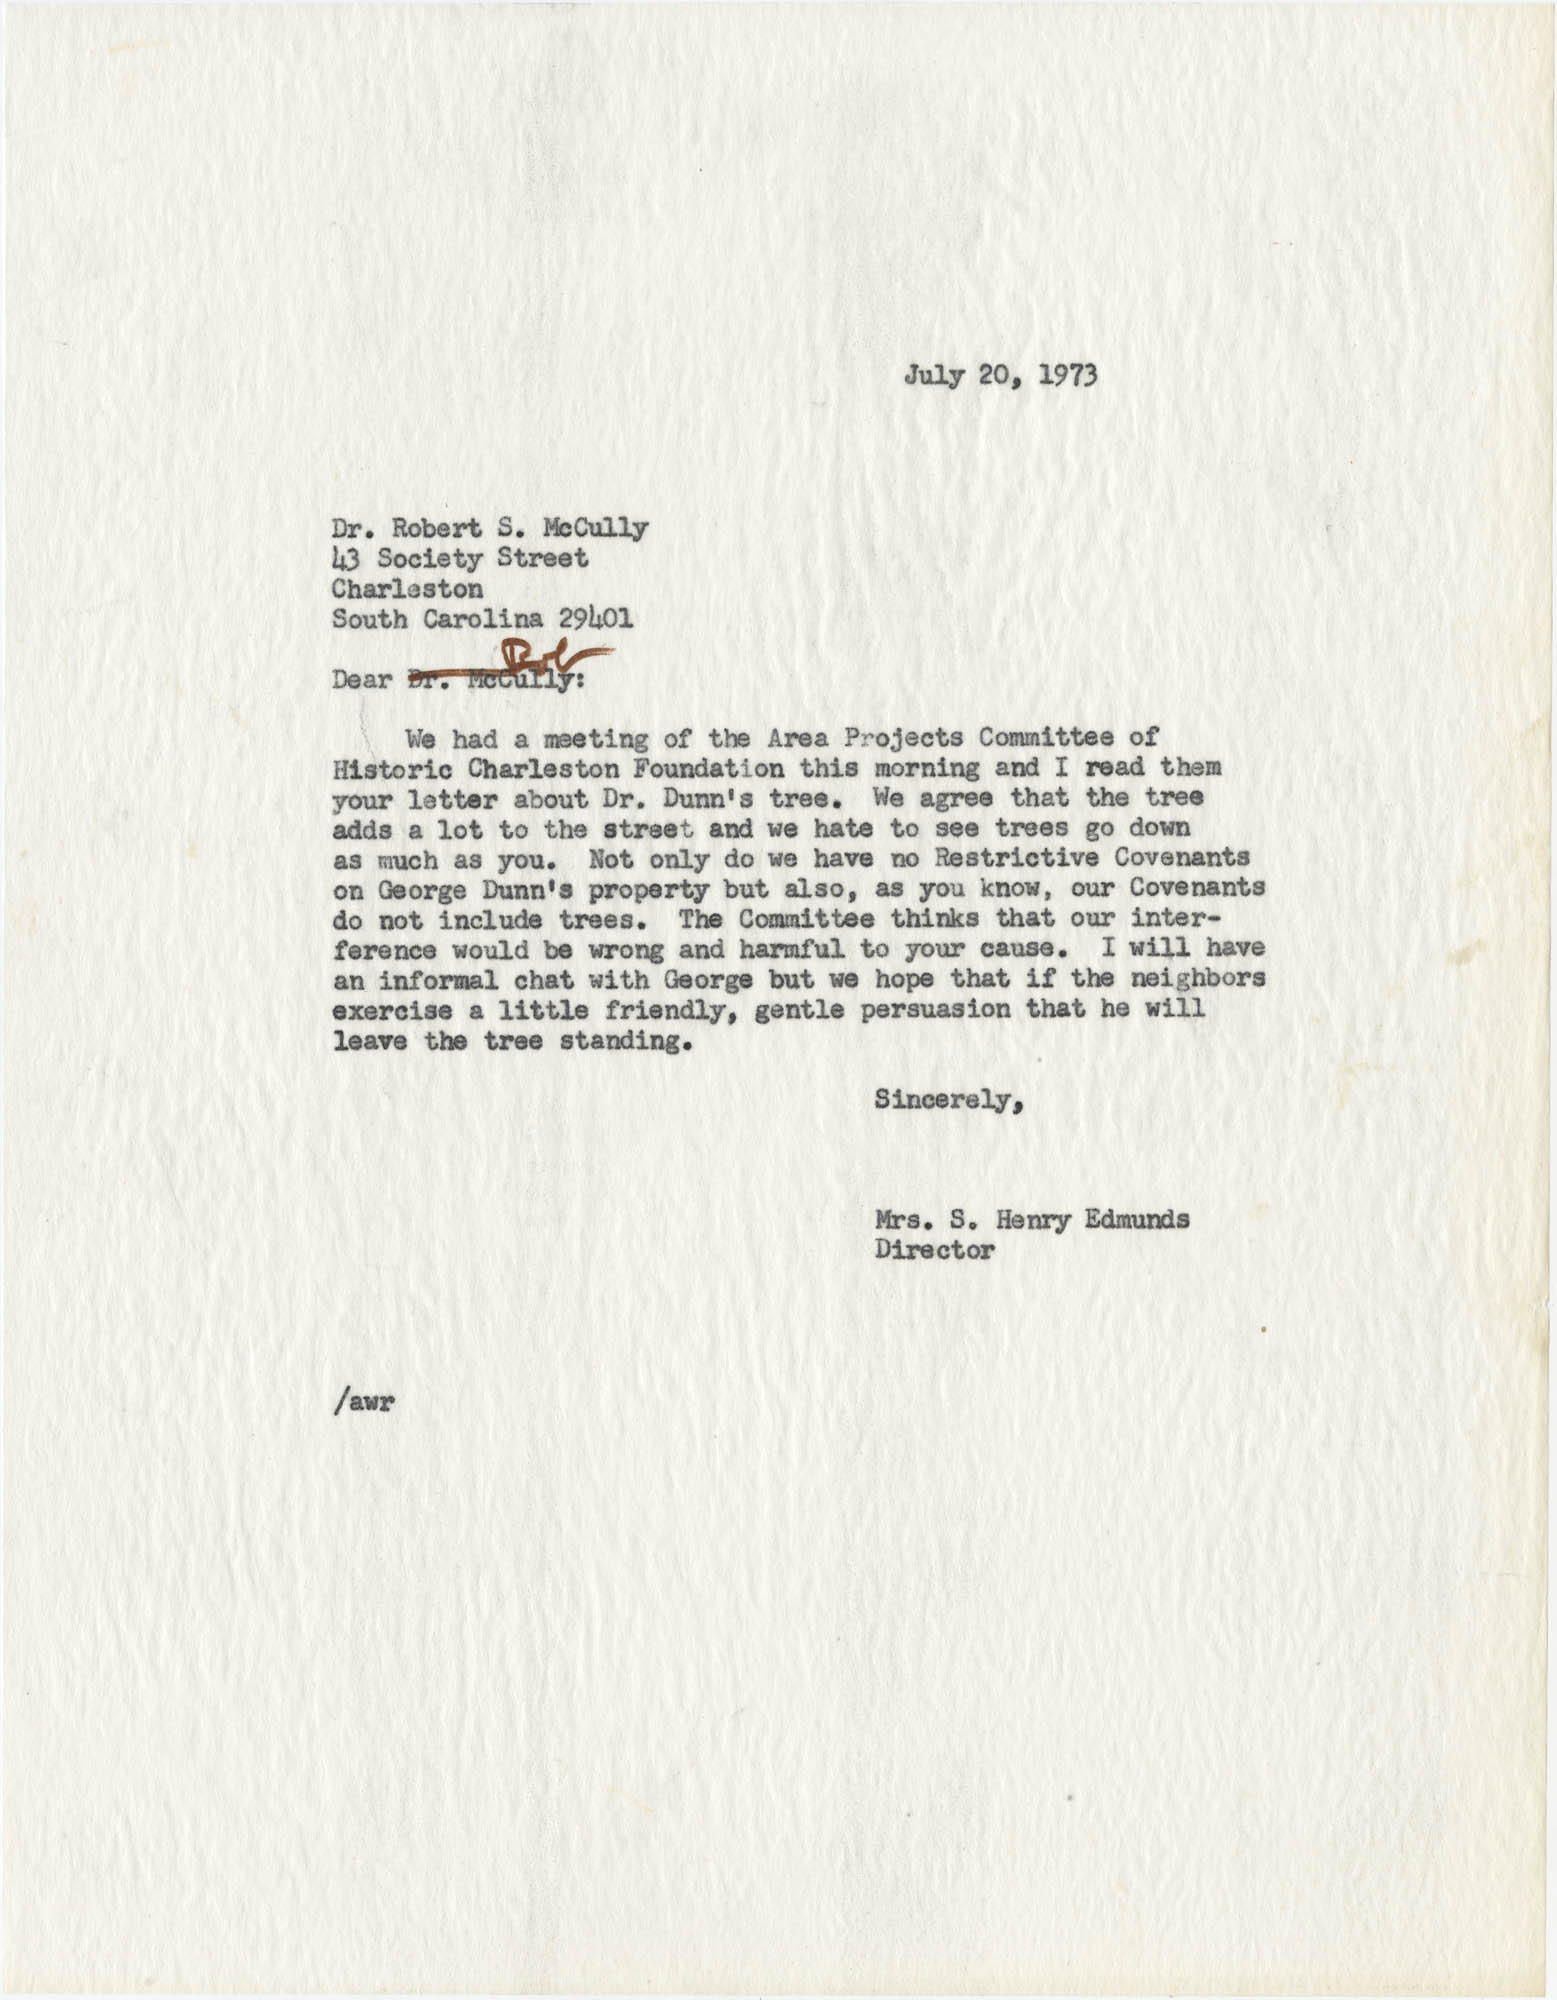 Letter from Mrs. S. Henry Edmunds to Dr. Robert S. McCully